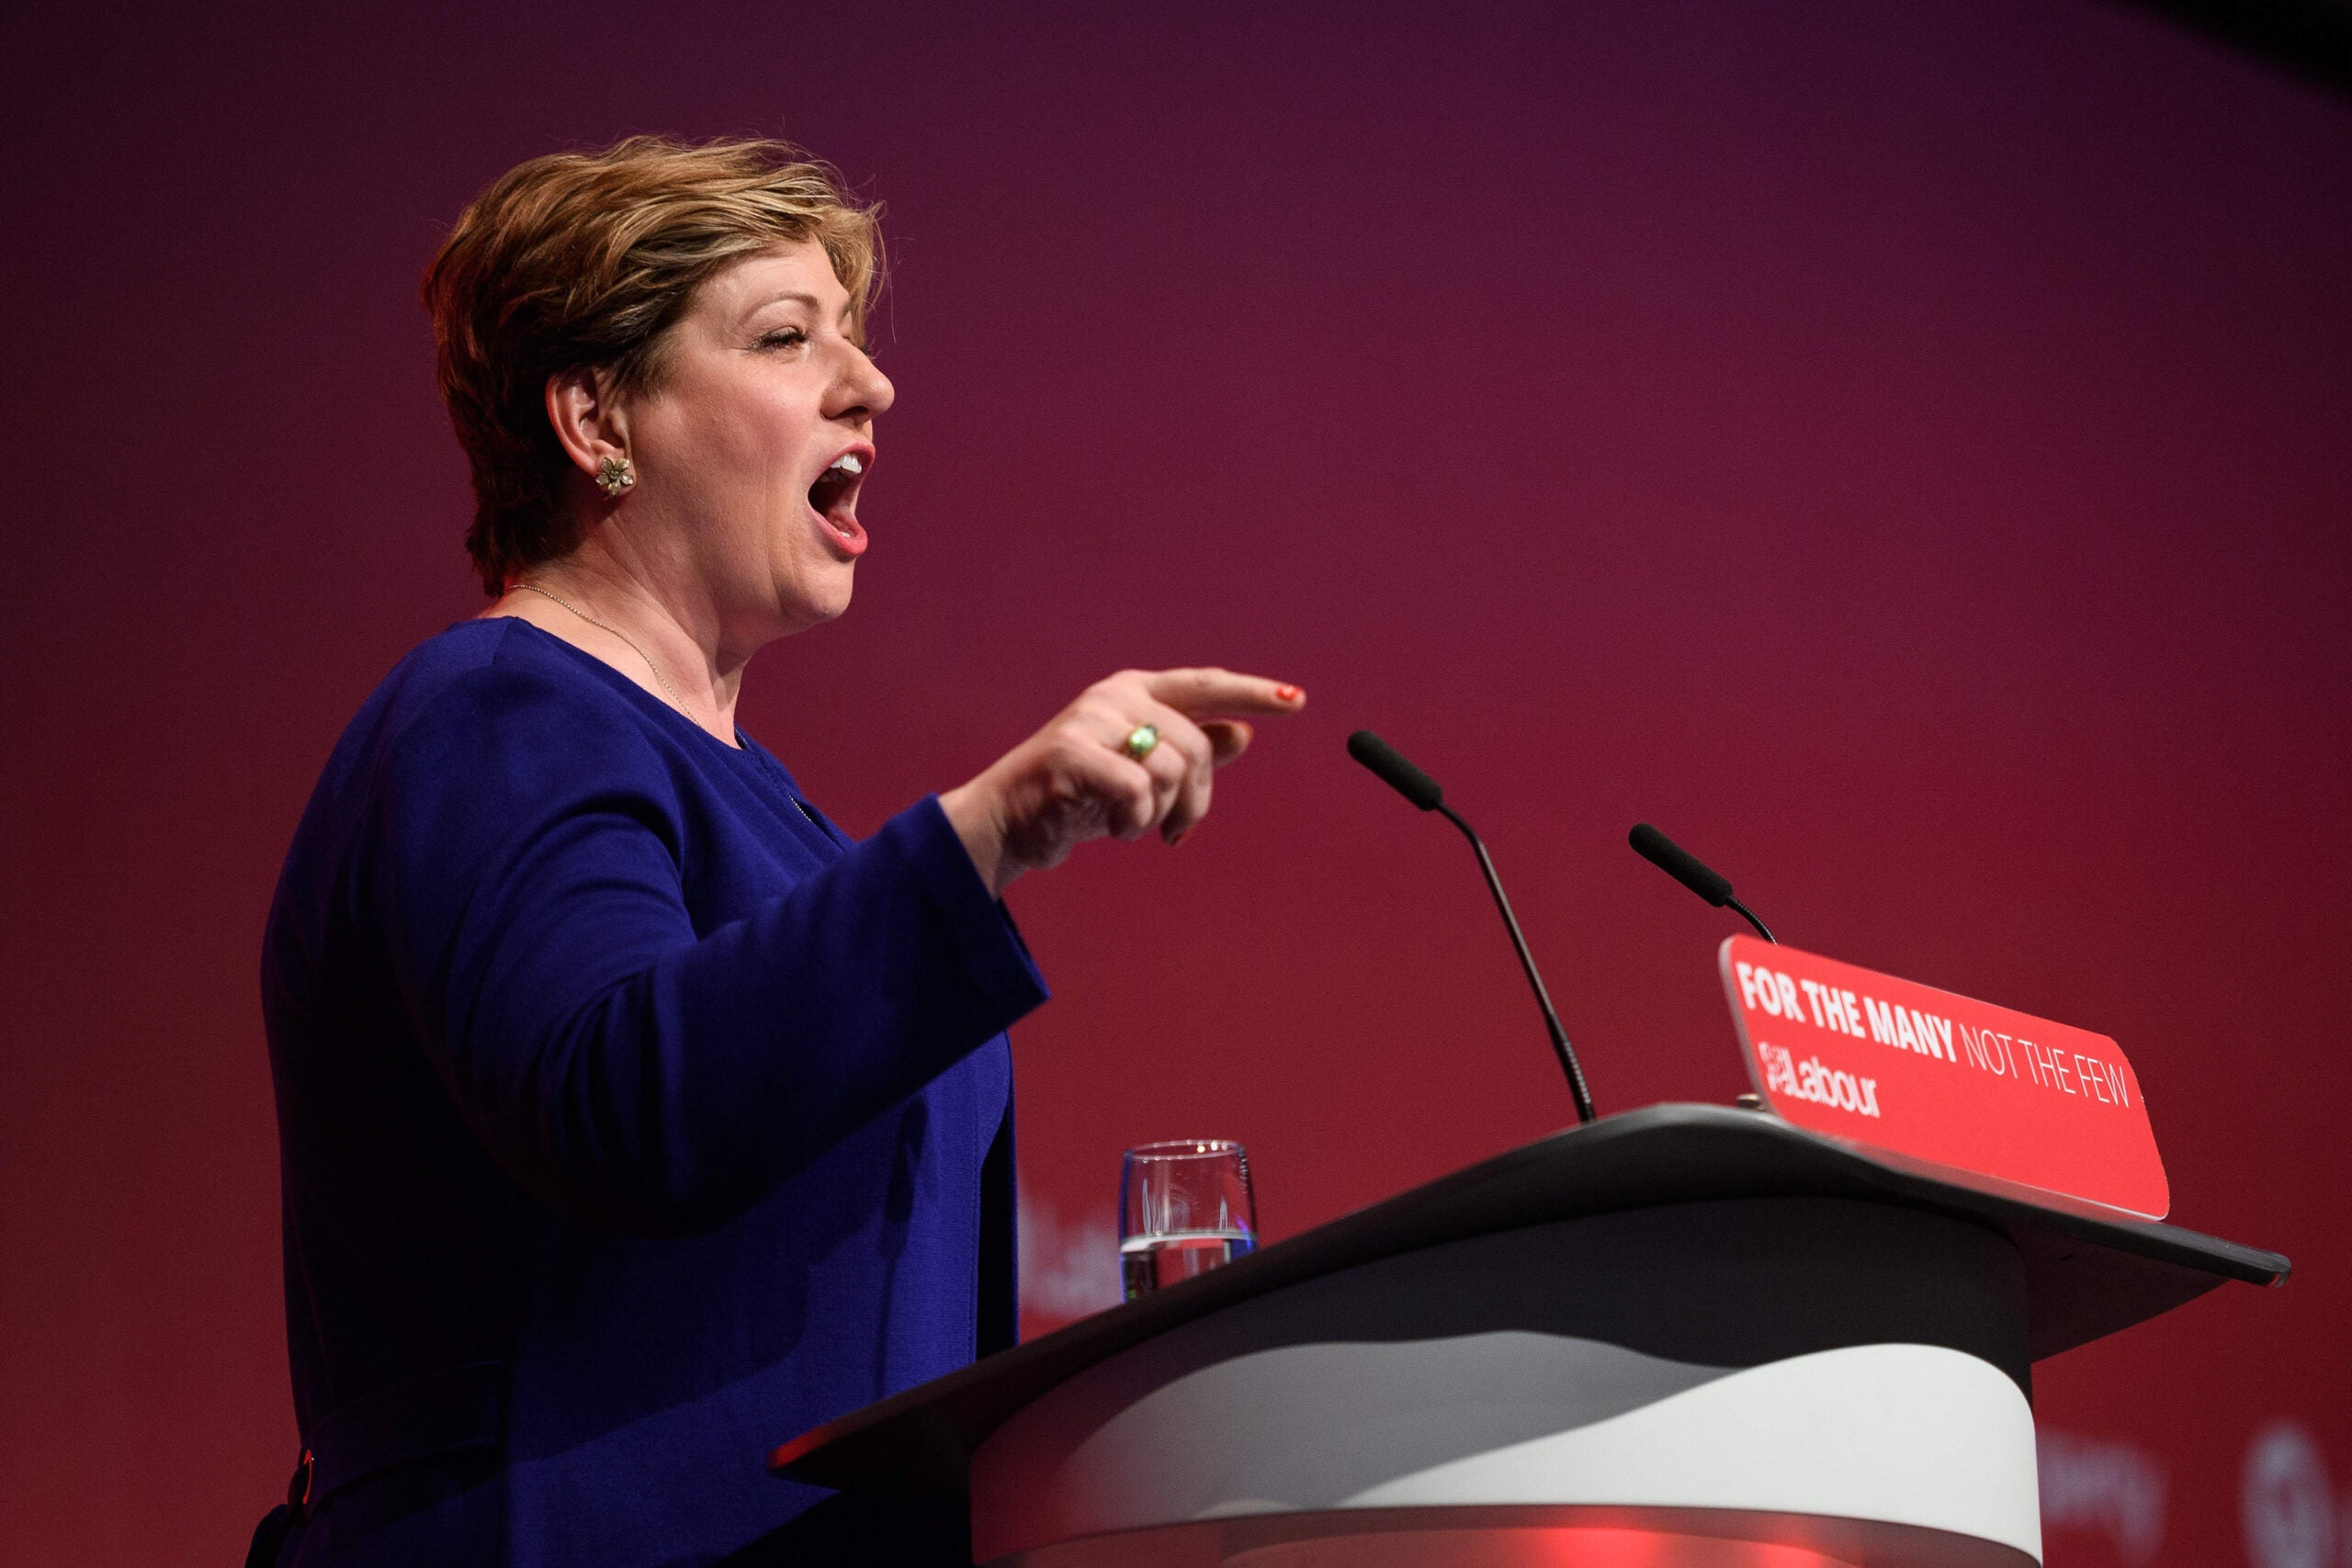 PMQs review: A win for Emily Thornberry as she relishes in the Tories' woes